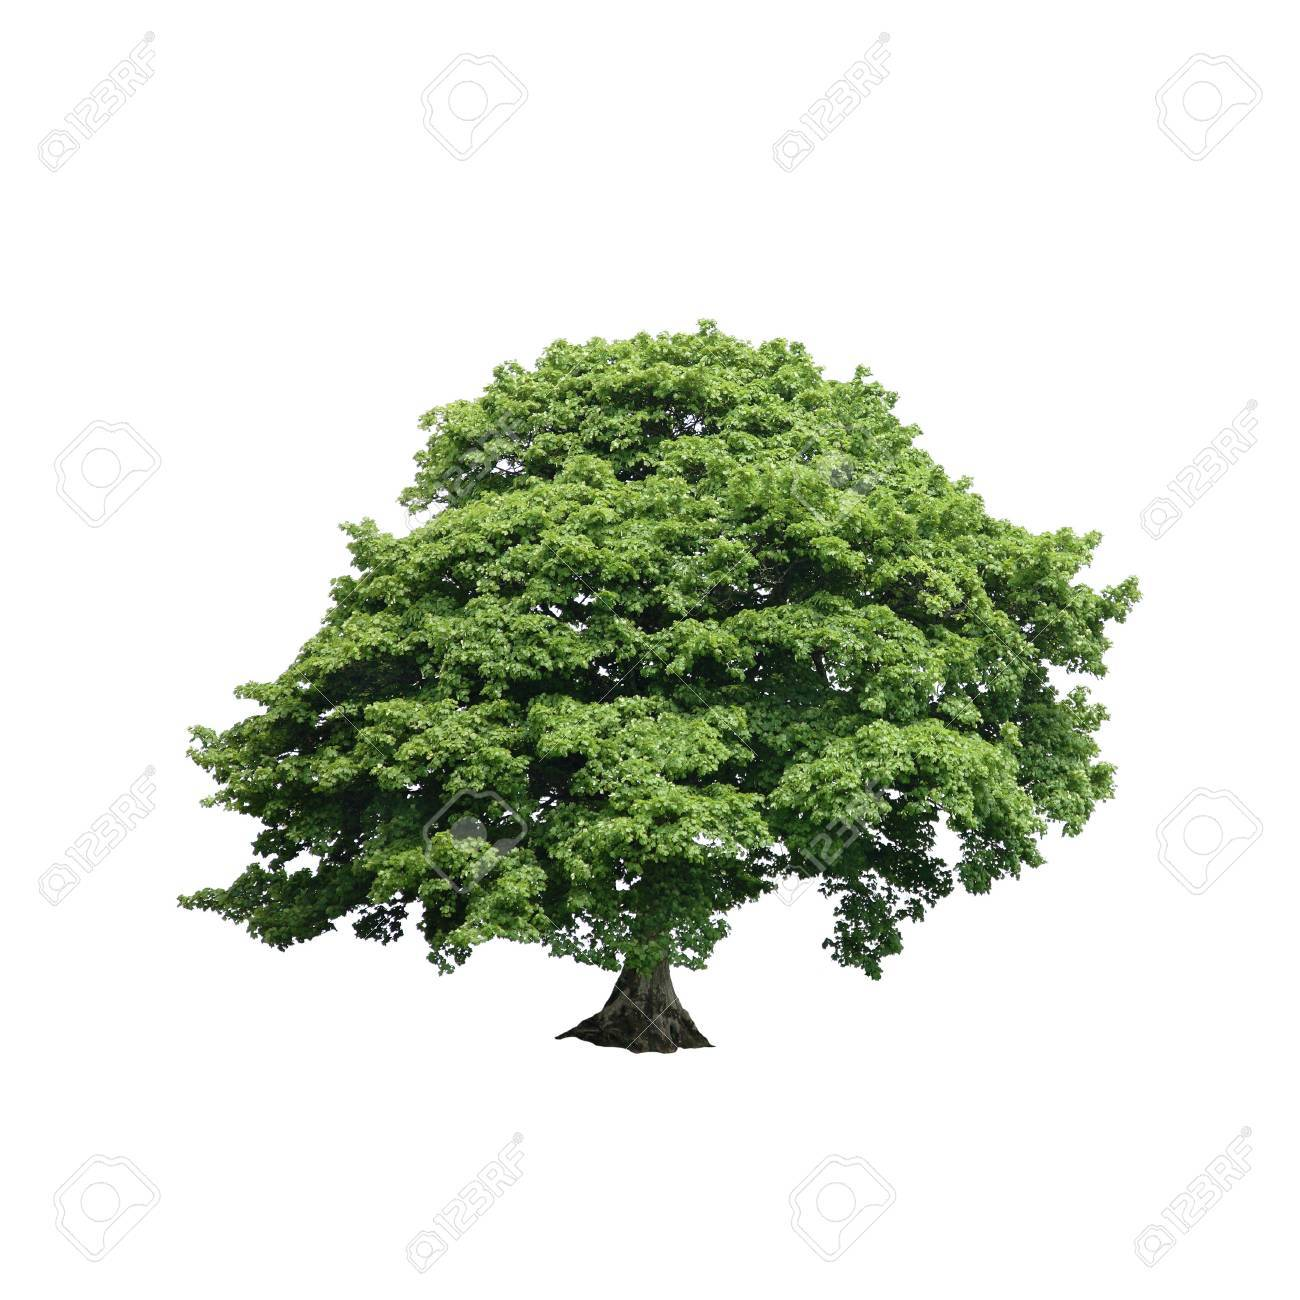 Sycamore tree in full leaf in summer set against a white background. Stock Photo - 3658030